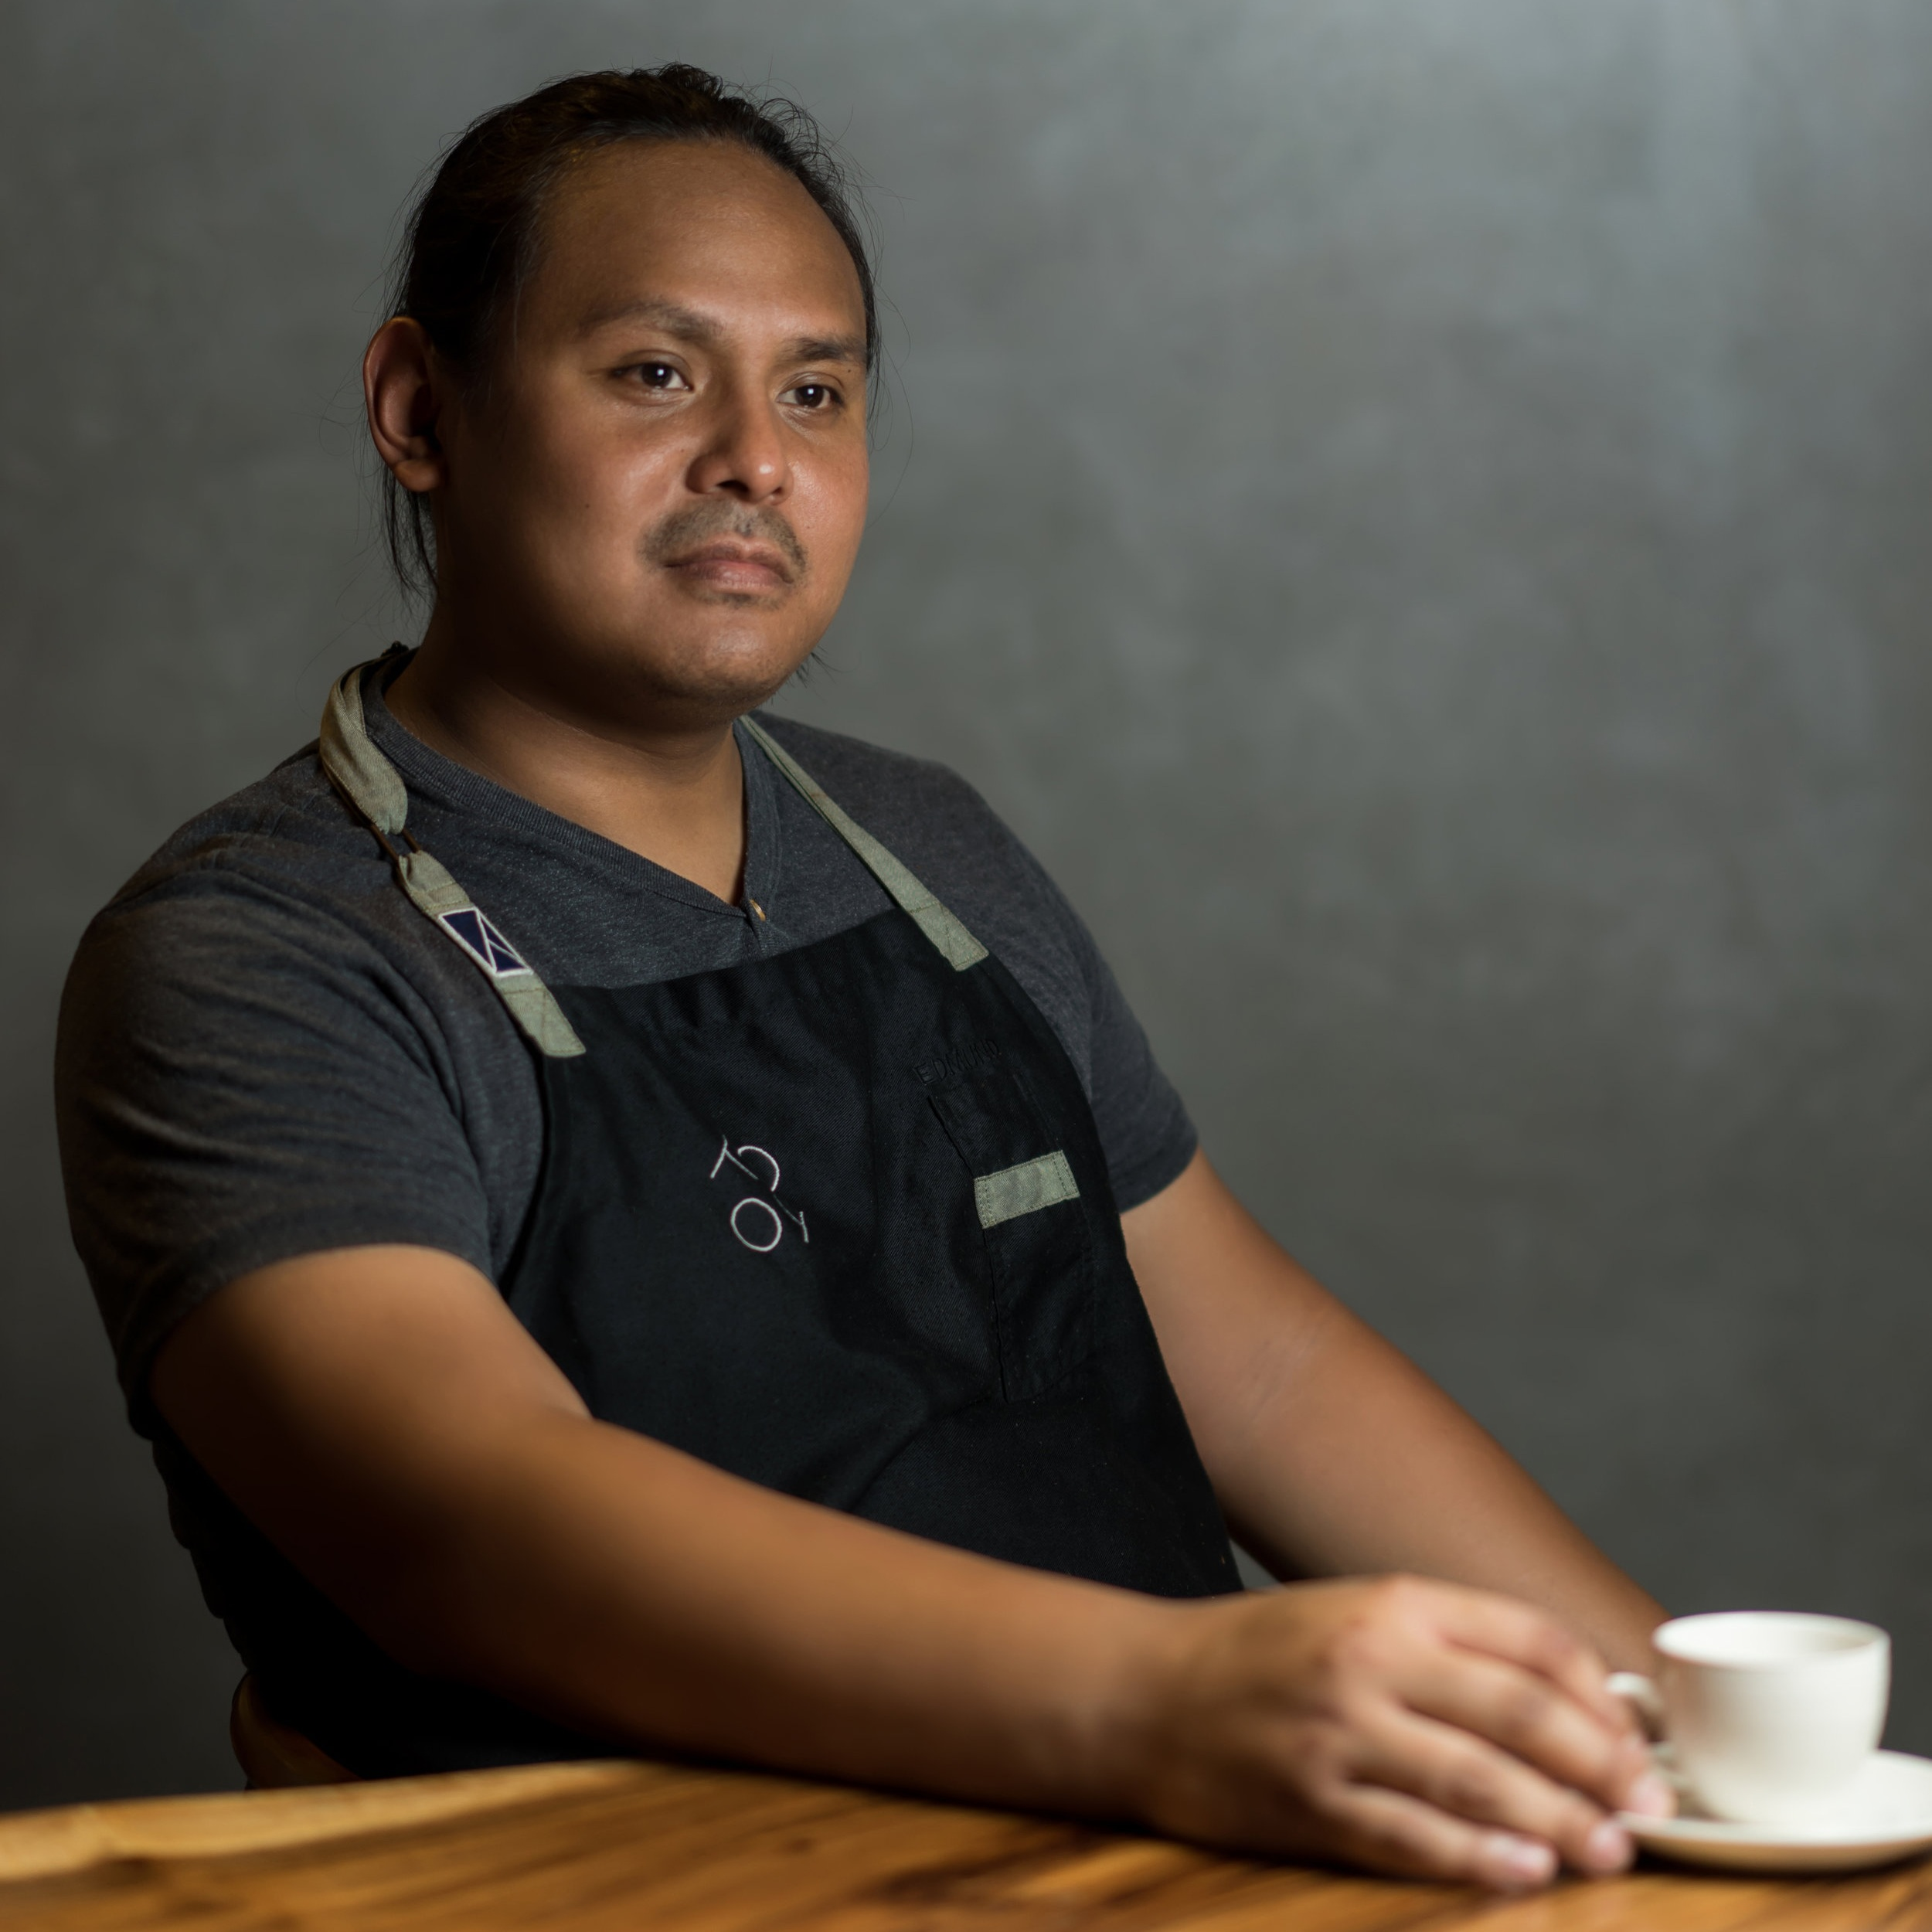 Jordy Navarra - Head Chef & Owner, Toyo Eatery and Panaderya Toyo, Manila.In figuring out his path, Jordy dabbled in sports, business and music, before arriving at food. Inspired by Heston Blumenthal's Hot & Iced Tea, Ferran Adria's spherification and Thomas Keller's kitchen magic, the food world enticed him.Navarra saw that food was more than consumption - that there could be meaning to the act of eating, and more to cooking than simply writing down recipes. Through food, ideas can be shared, memories and emotions evoked.After culinary school, Navarra left the Philippines to cook in London and Hong Kong, but his time there made him realise he had no foundational relationship to the food he worked with. Navarra returned to his hometown to create food that resonated with the flavours he grew up with.At the time, Manila's food scene was changing. It was the perfect opportunity for him to launch a project experimenting with Filipino flavours. After a few roadblocks, he and his team persevered. And so, Toyo Eatery was created.Through Navarra, Toyo Eatery finds new ways to present familiar Filipino flavours. Their creativity has piqued the interest of top chefs from Singapore, Indonesia, Taiwan, Japan, and Belgium. Navarra insists there is still much to learn and do, that he and his team at Toyo Eatery are continuously uncovering.